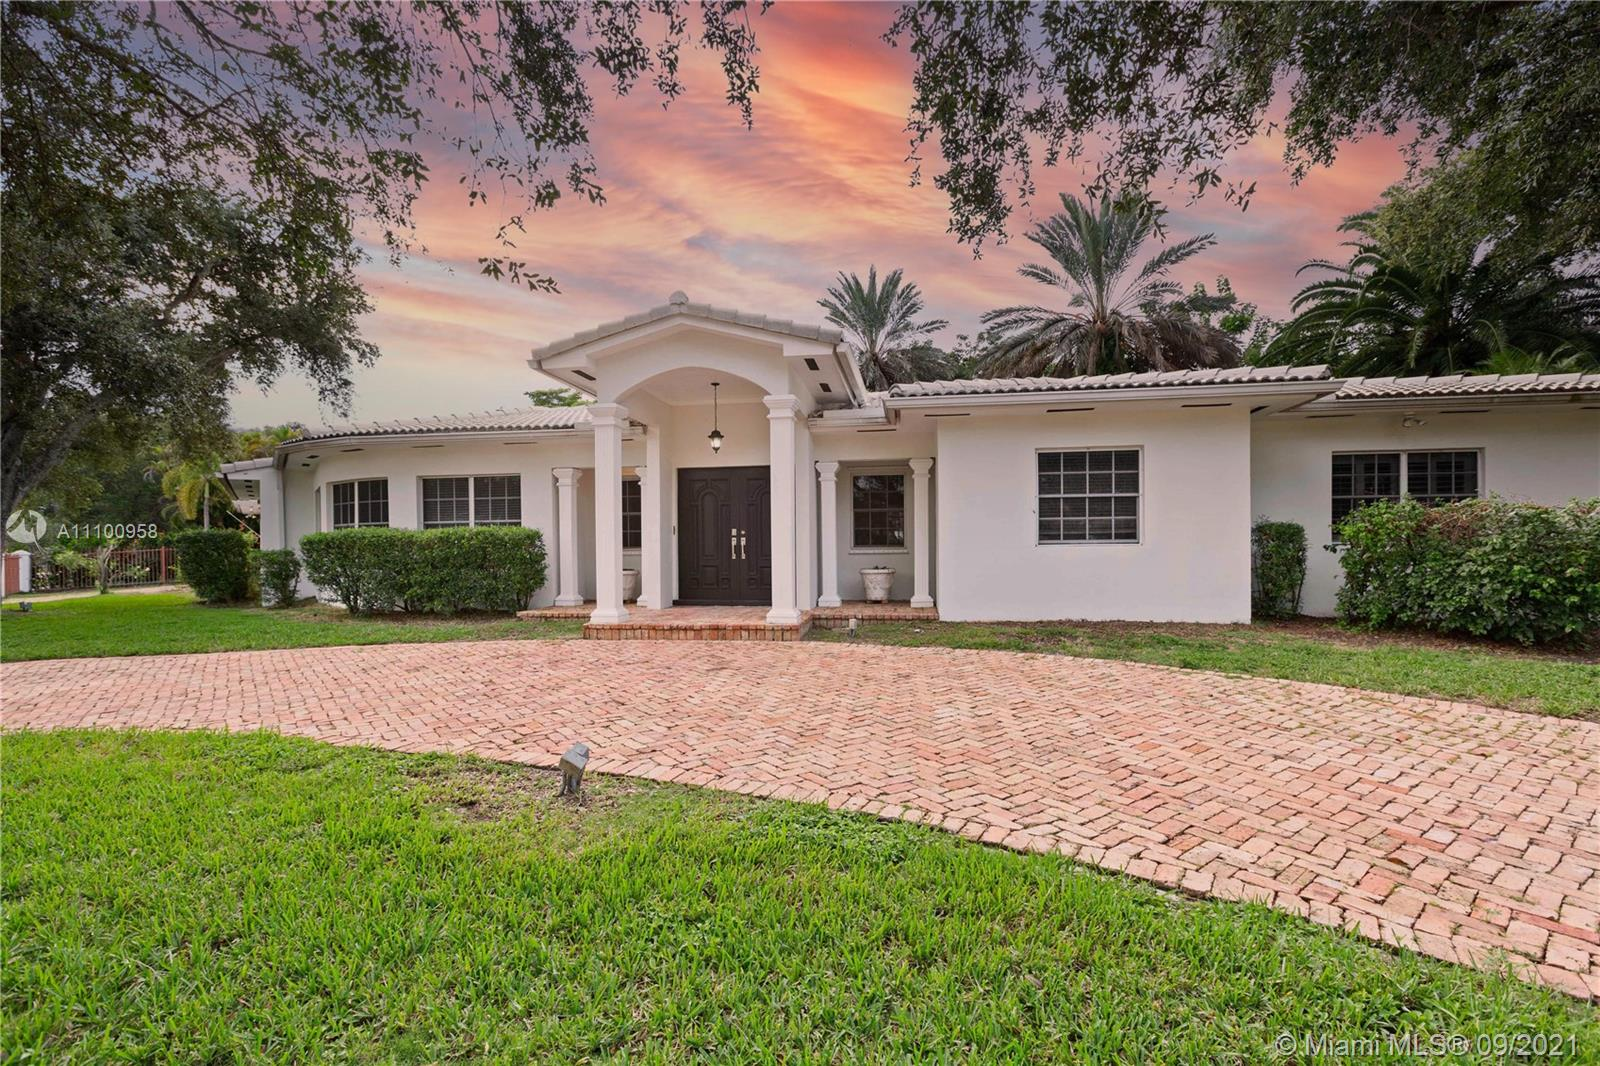 505  Luenga Ave  For Sale A11100958, FL